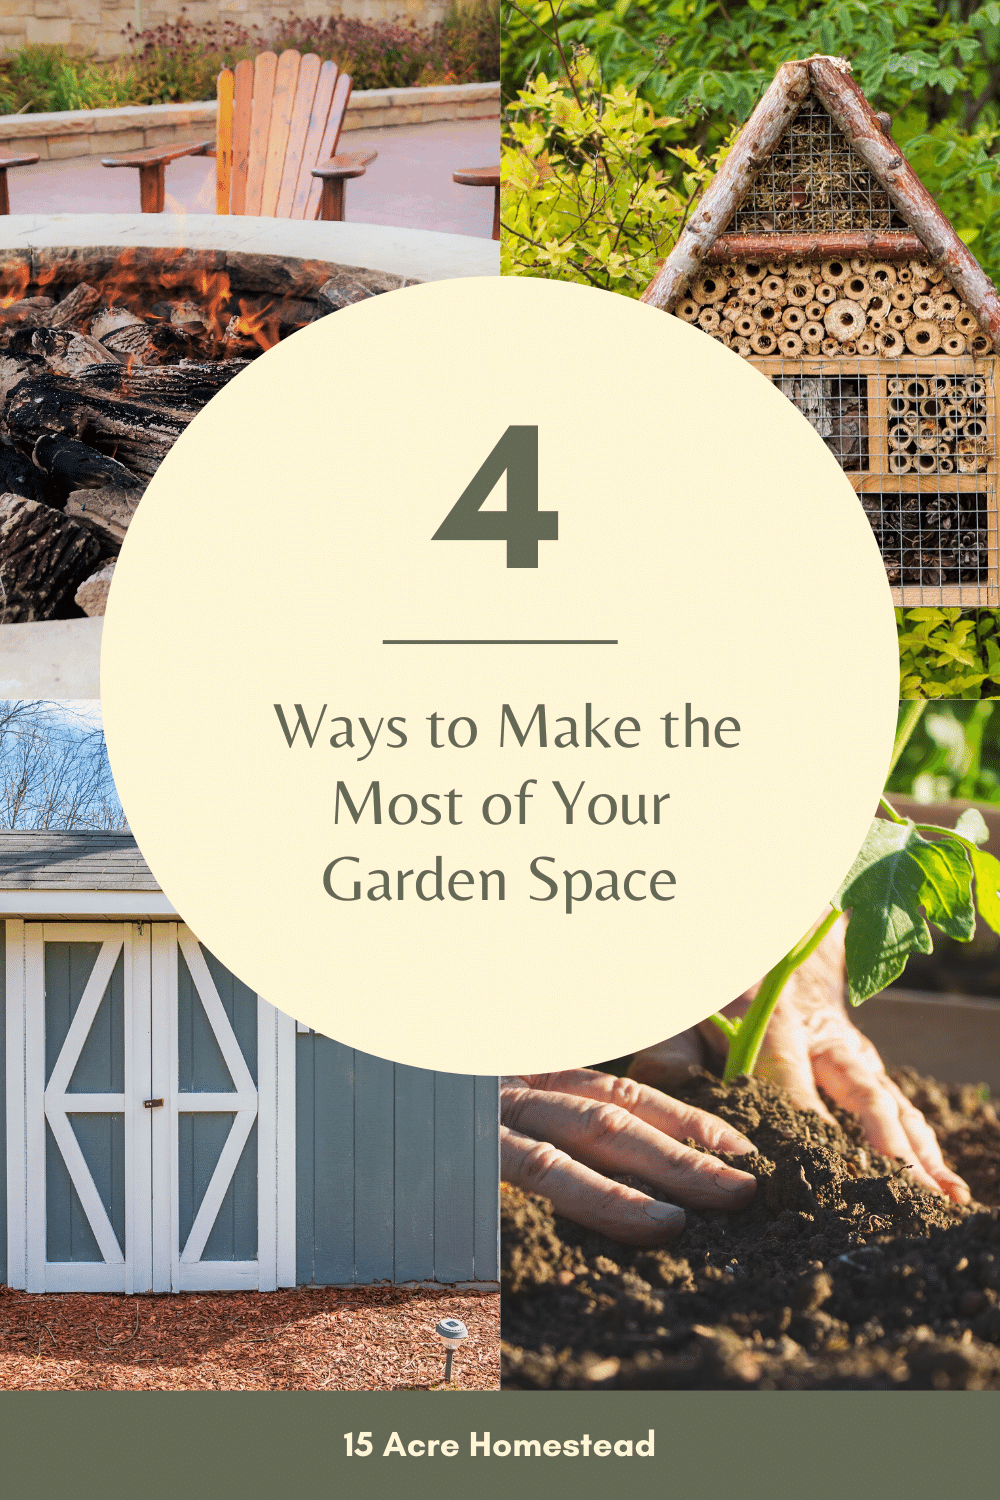 Use these quick and simple tips to make the most of your garden space on your homestead.